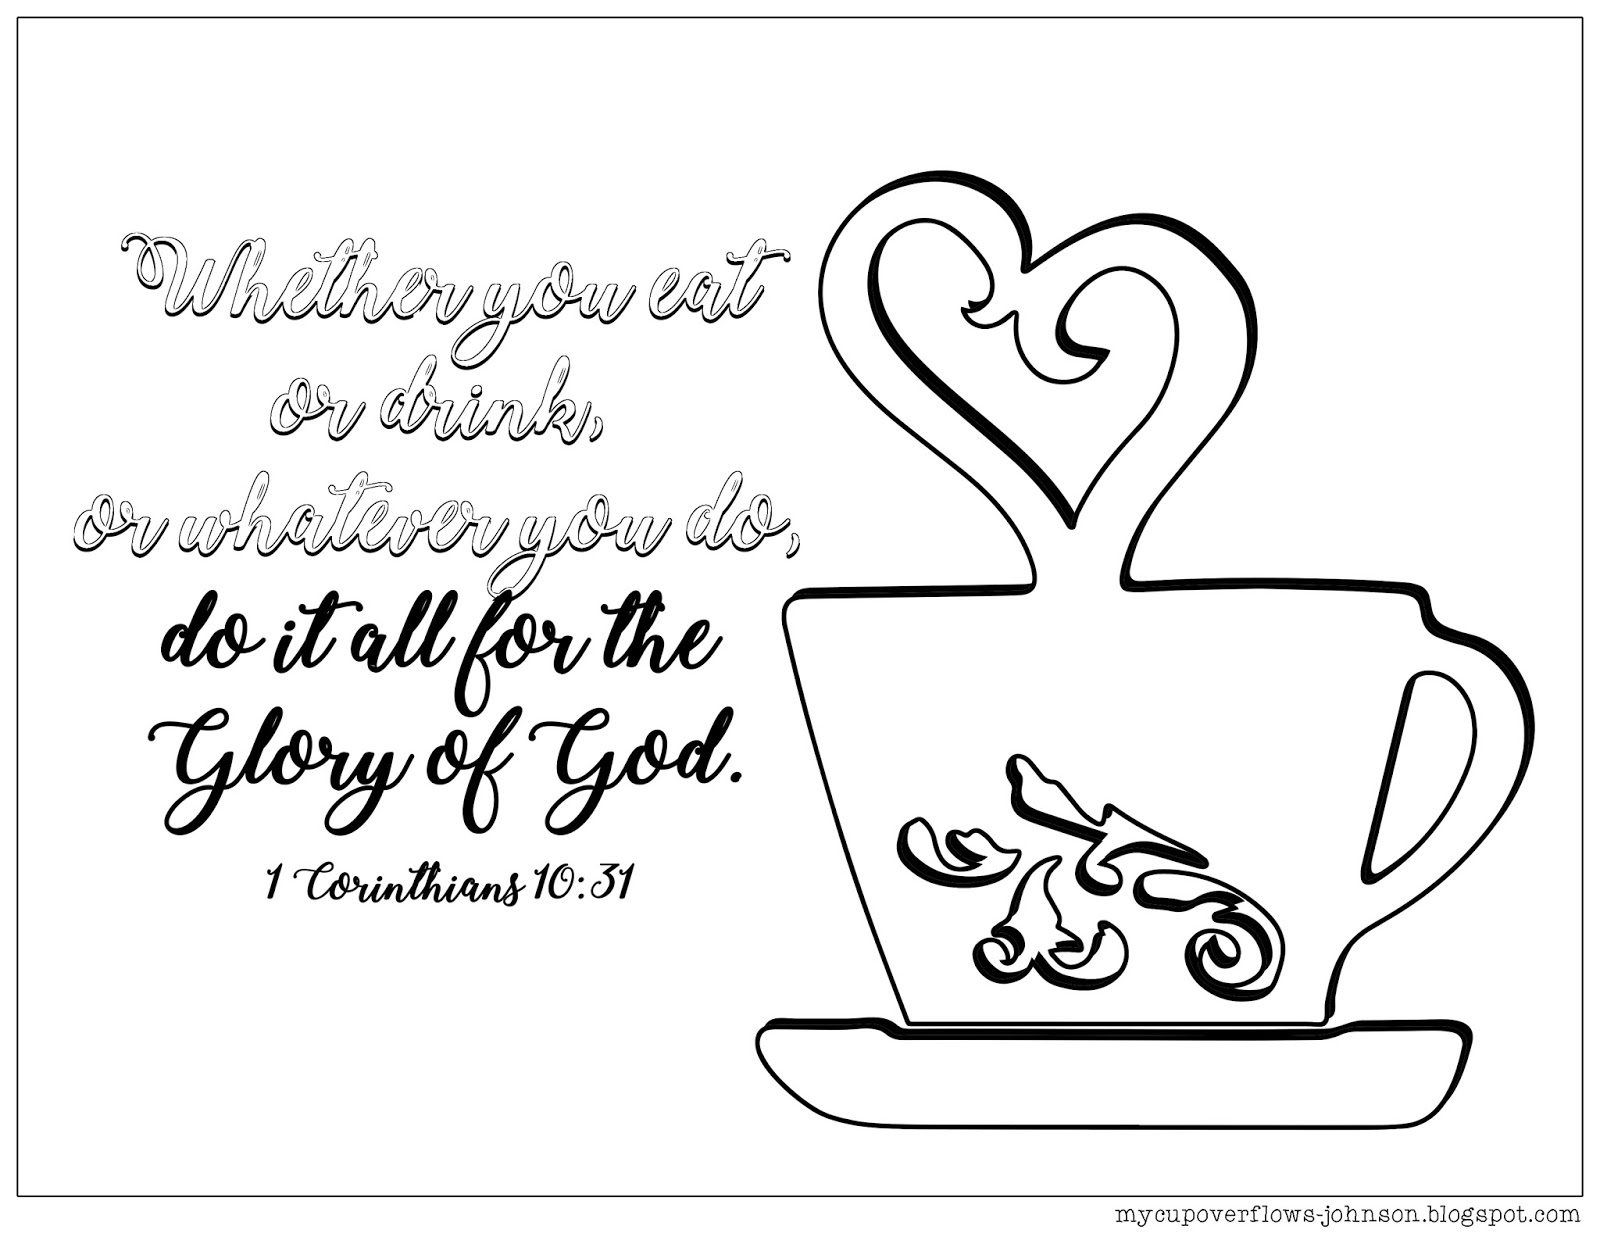 coffee cup coloring pages my cup overflows tea and coffee pages coloring coffee cup